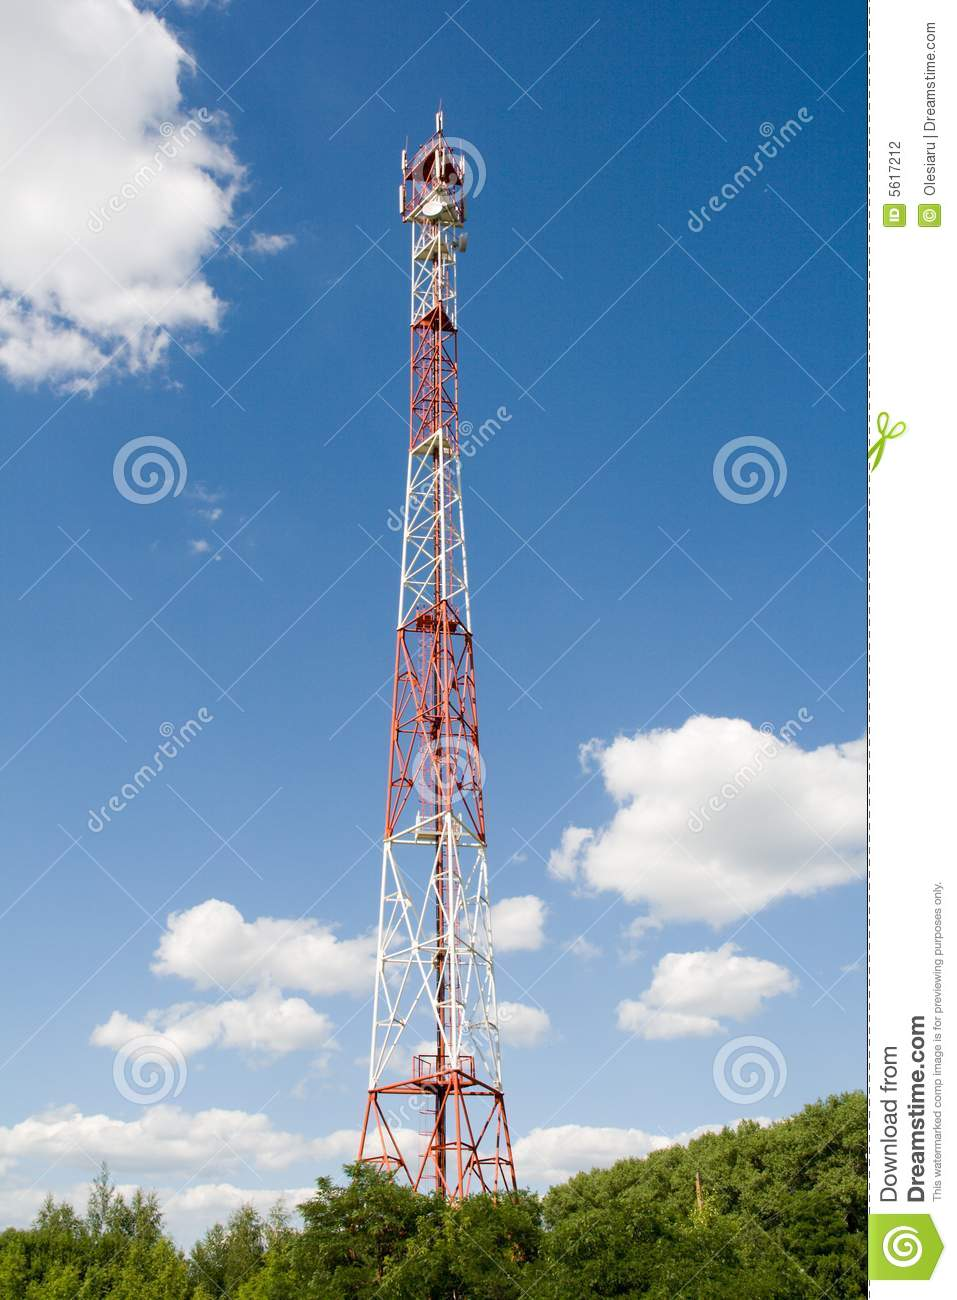 Cell-communications tower